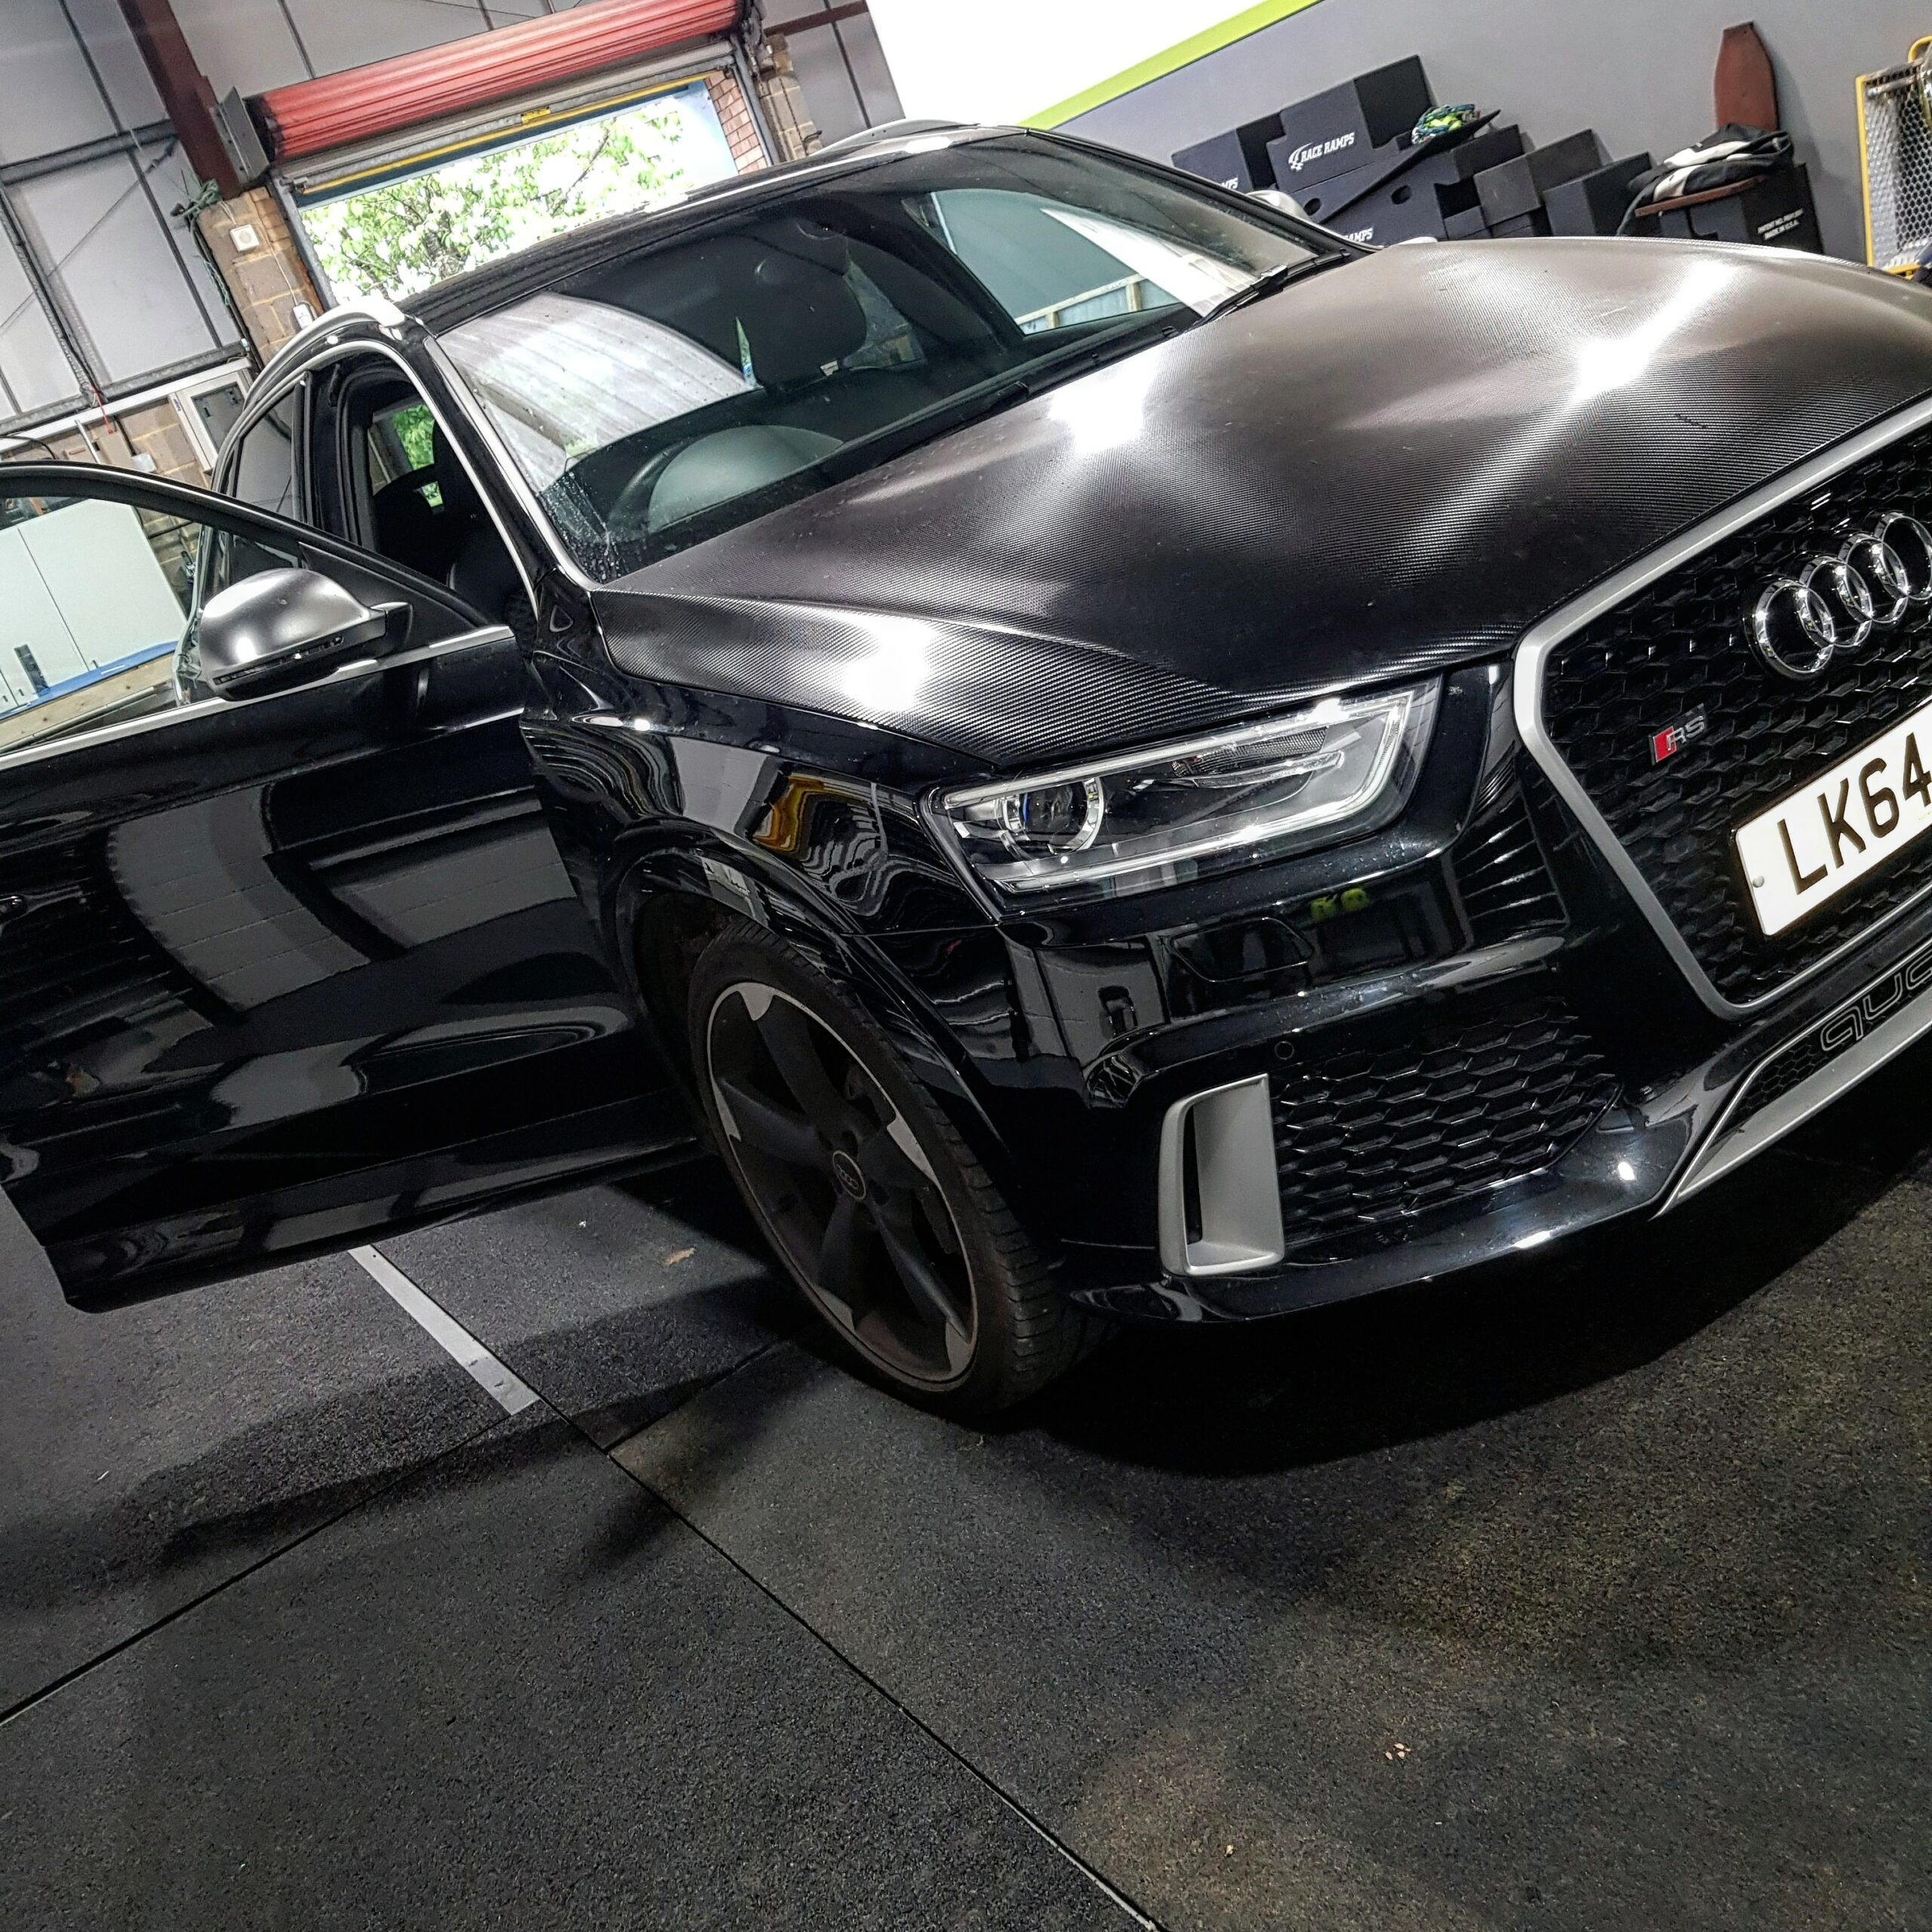 RSQ3 remapping in Dorset